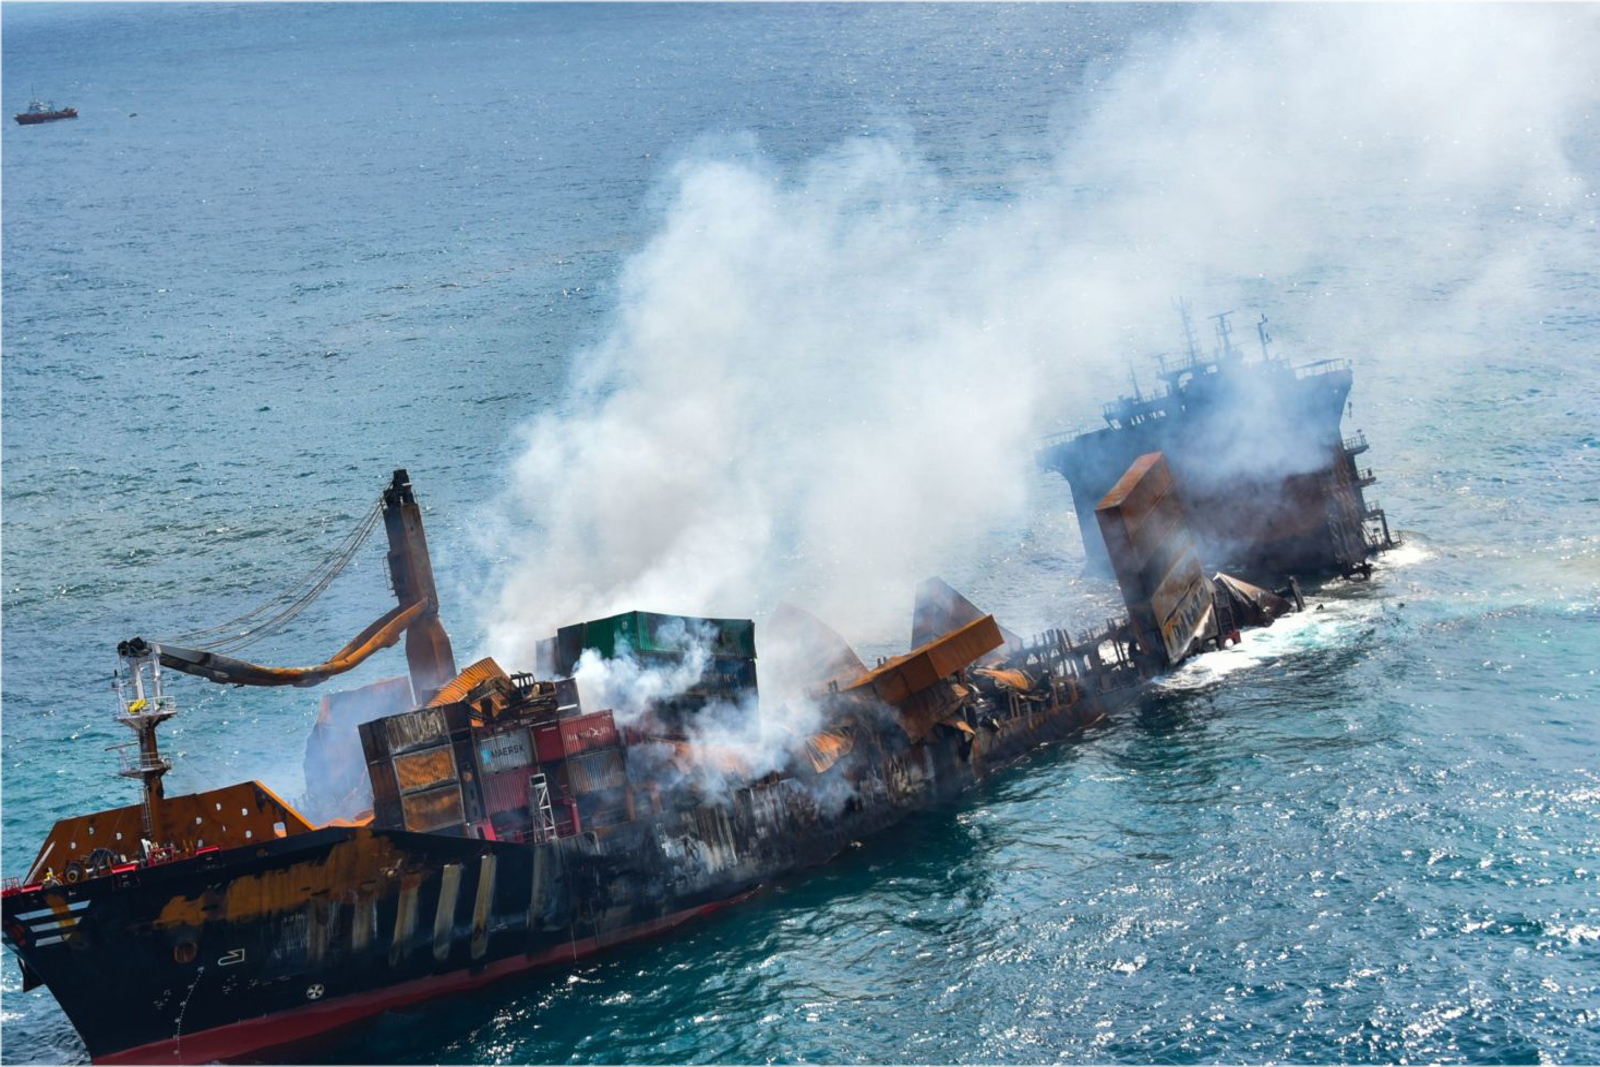 X-Press Pearl Partially Sinks Off Colombo